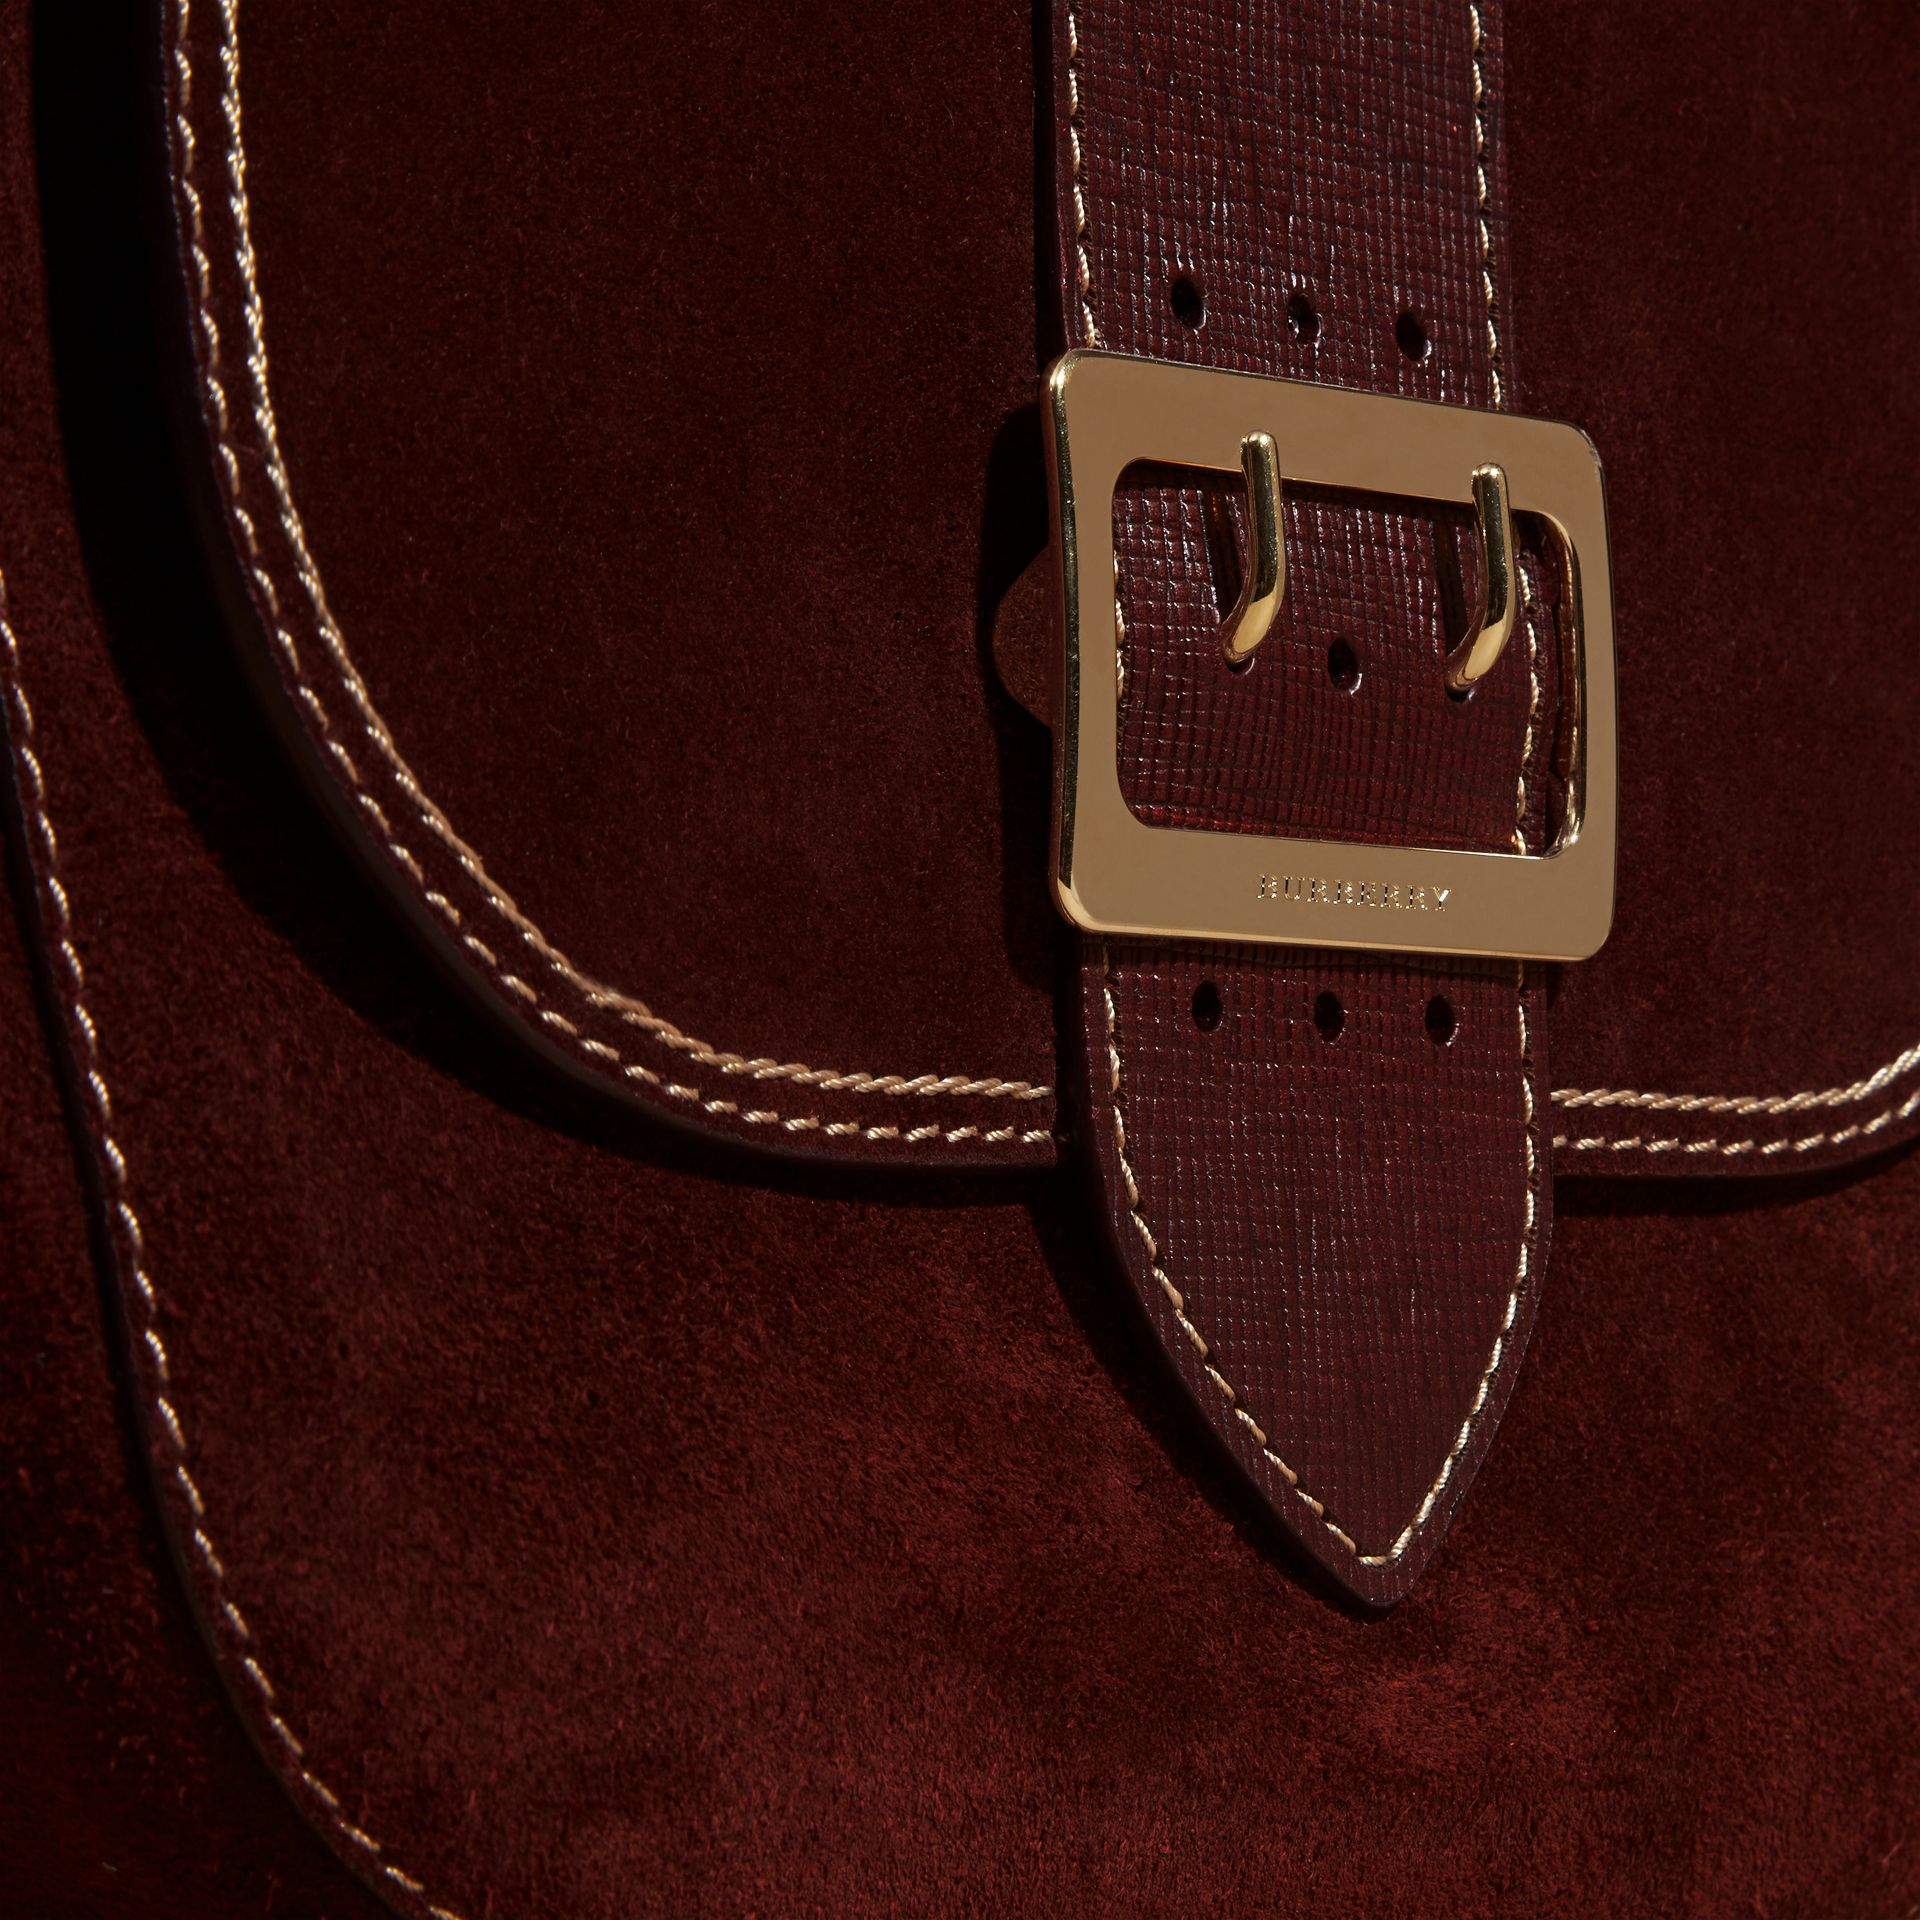 Rouge acajou Sac cartable The Buckle en cuir velours avec surpiqûres Rouge Acajou - photo de la galerie 2